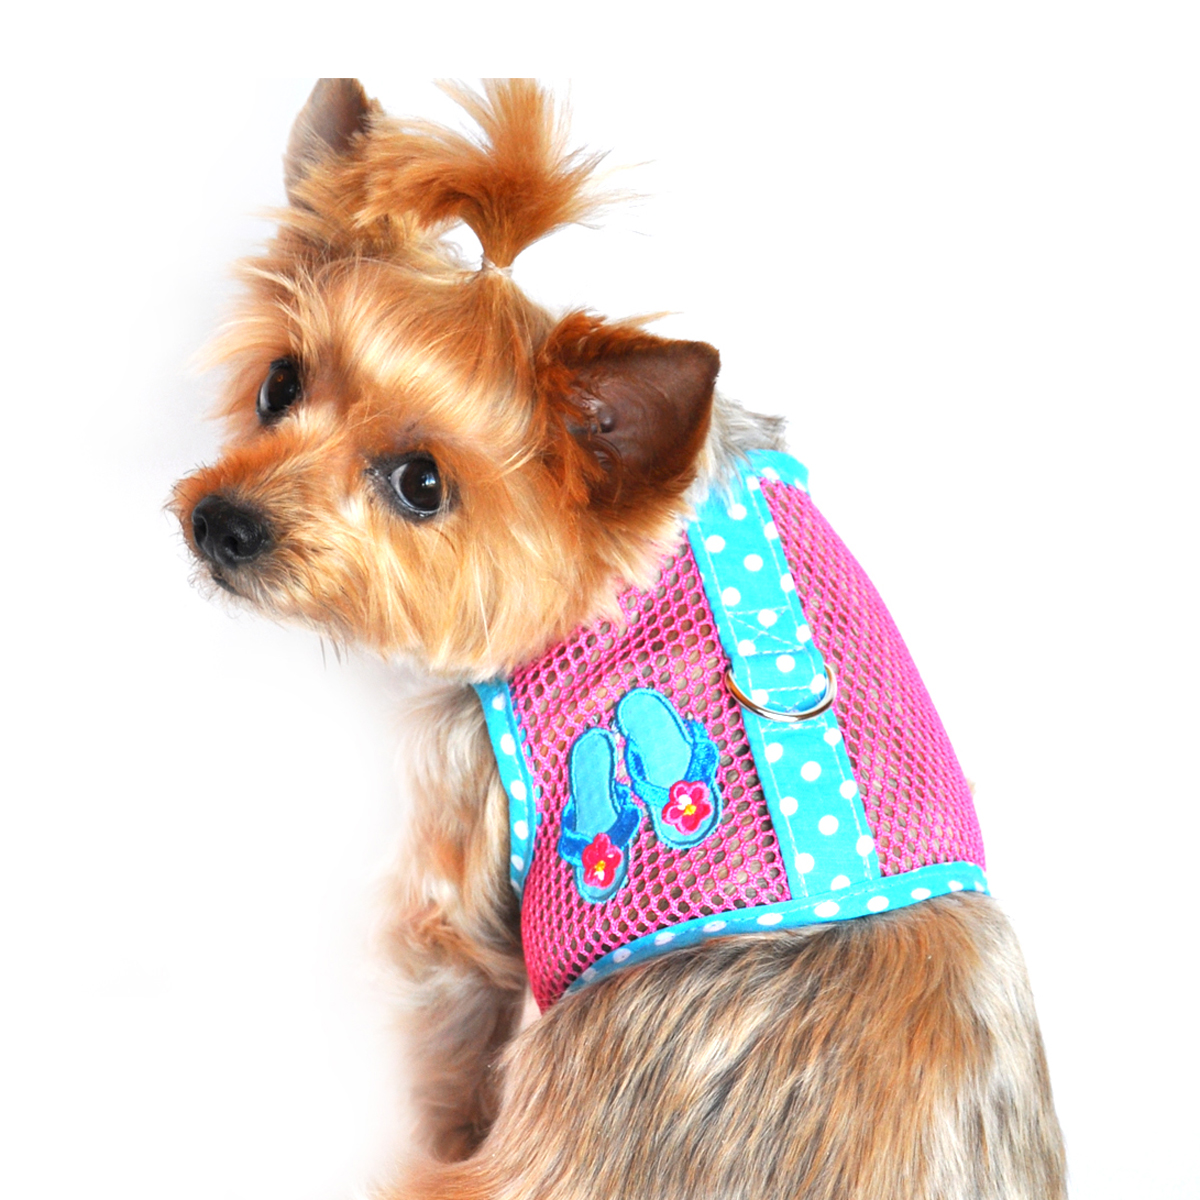 Flip Flop Mesh Dog Harness by Doggie Design - Pink and Ocean Blue